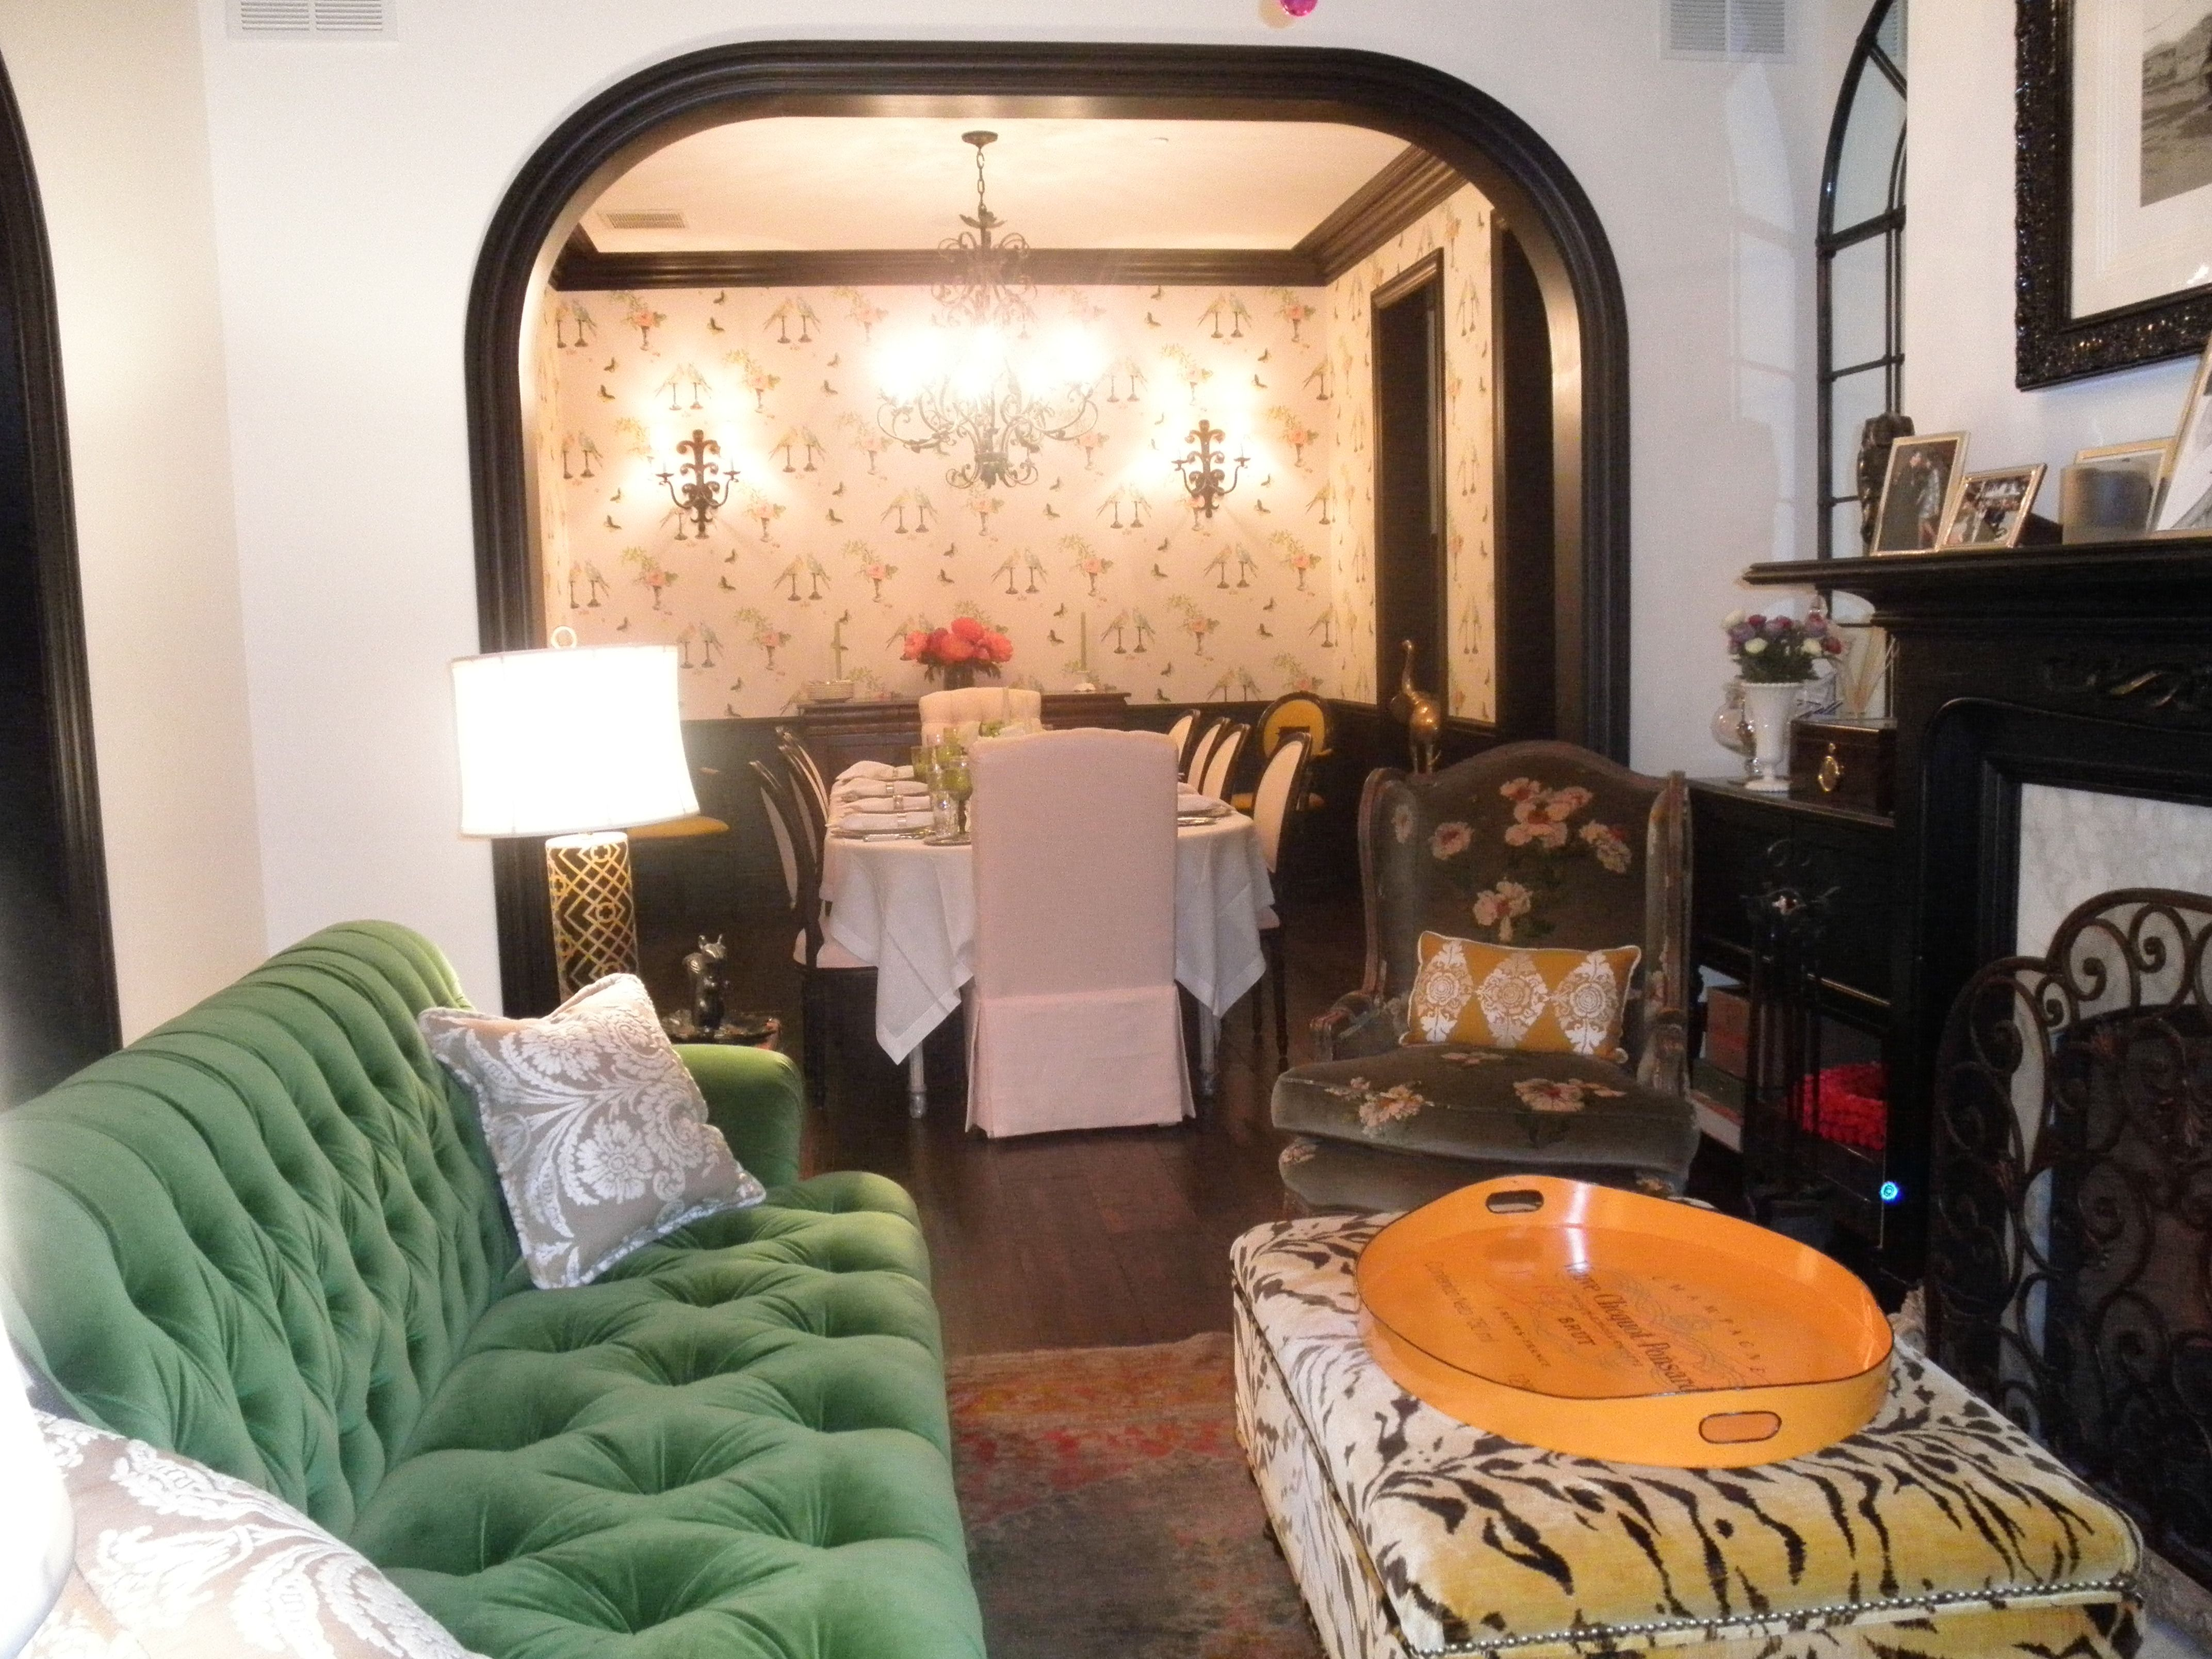 Designer Bailey McCarthy Chicago House Green CouchesTiger PrintHome Interior